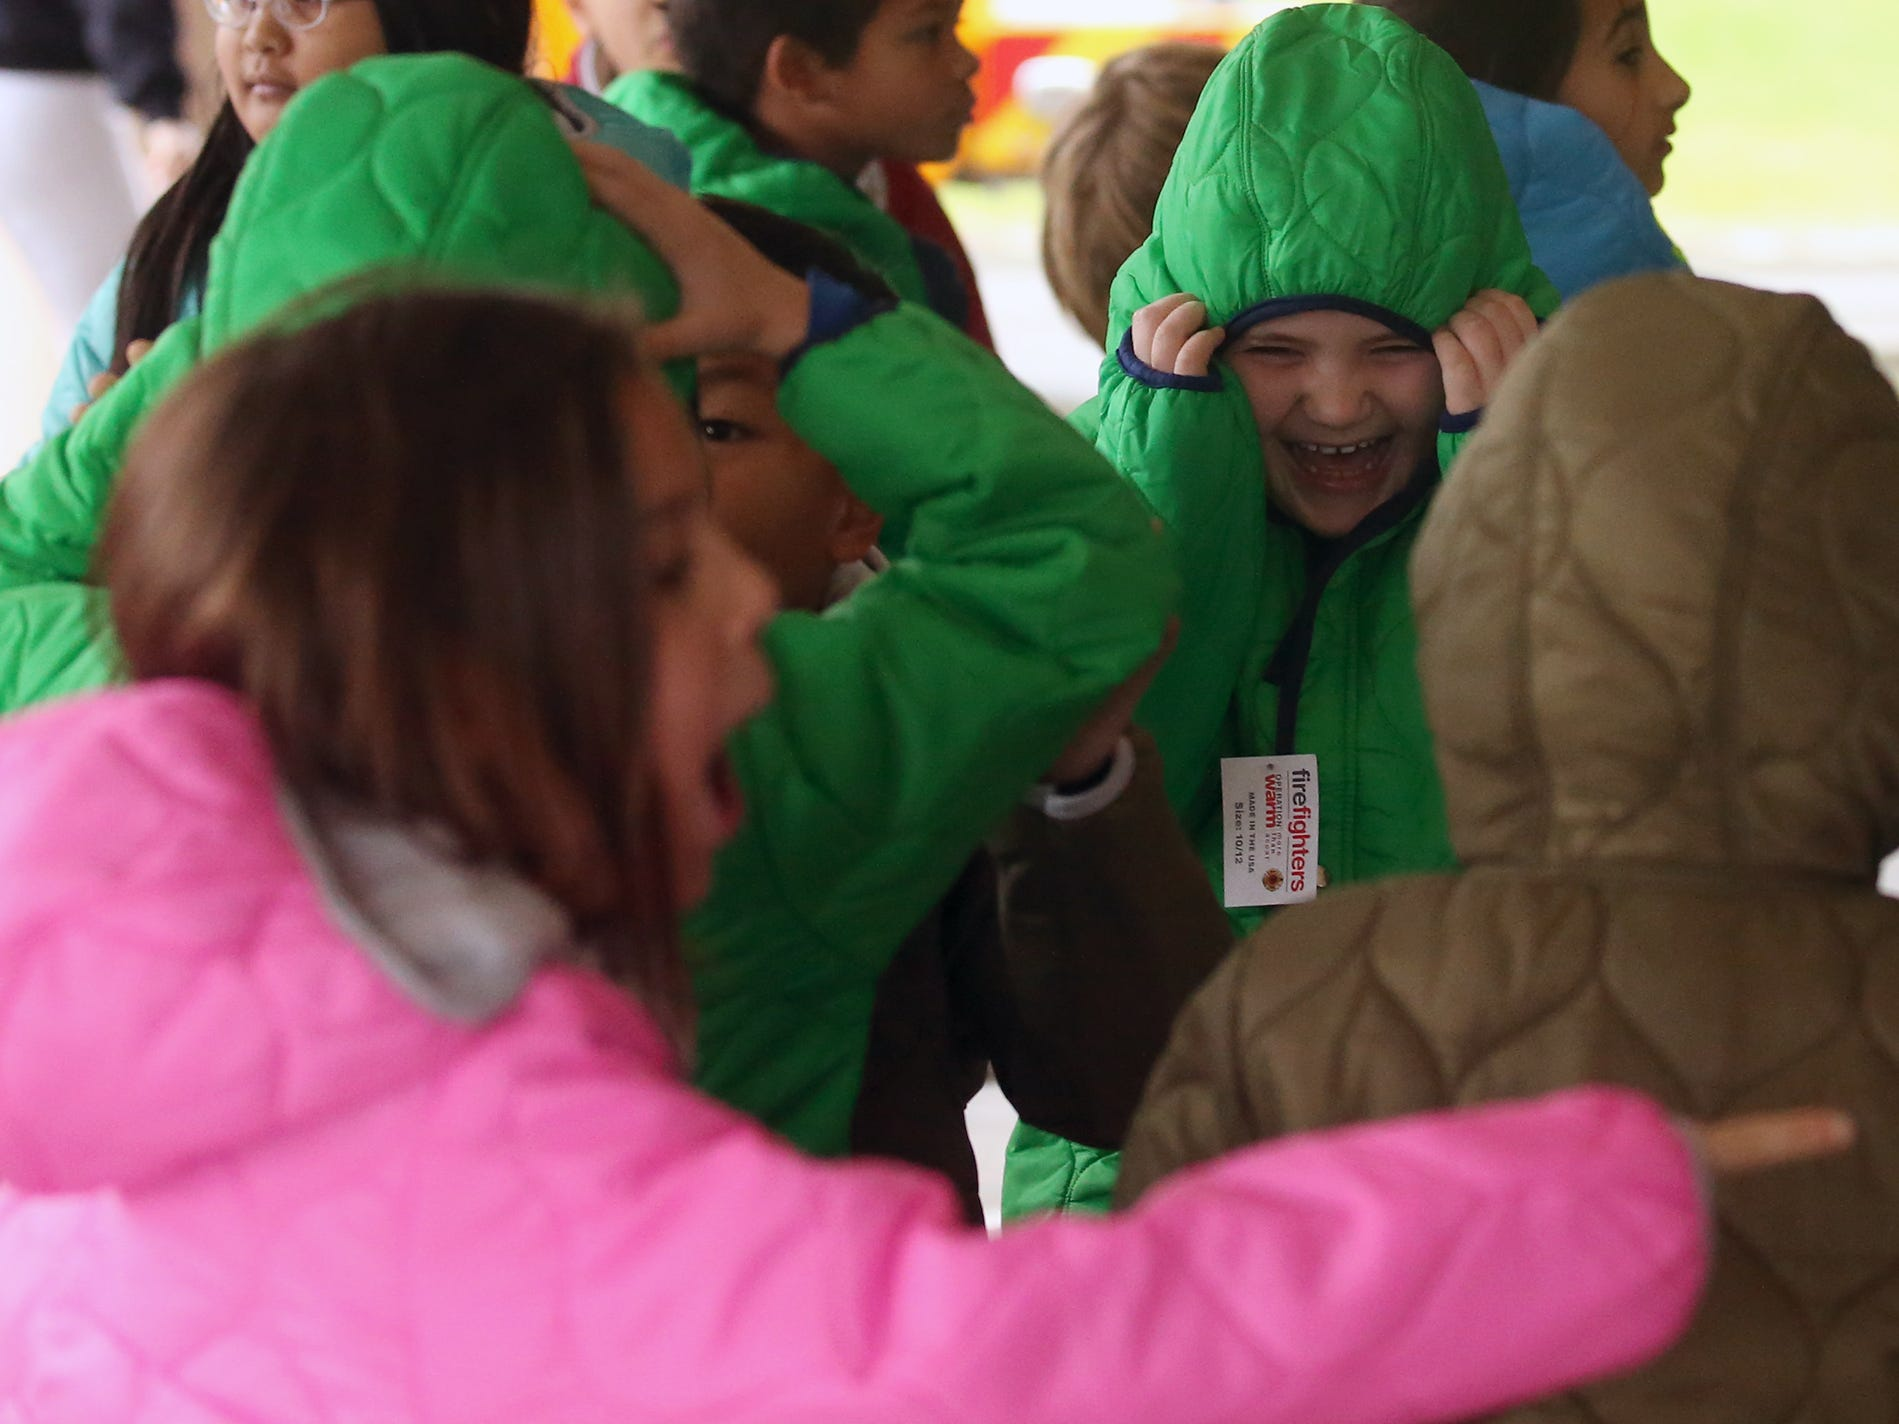 Students laugh and try out the hoods on their new coats during the annual Coats for Kids event held at Kitsap Lake Elementary School on Wednesday, November 28, 2018.